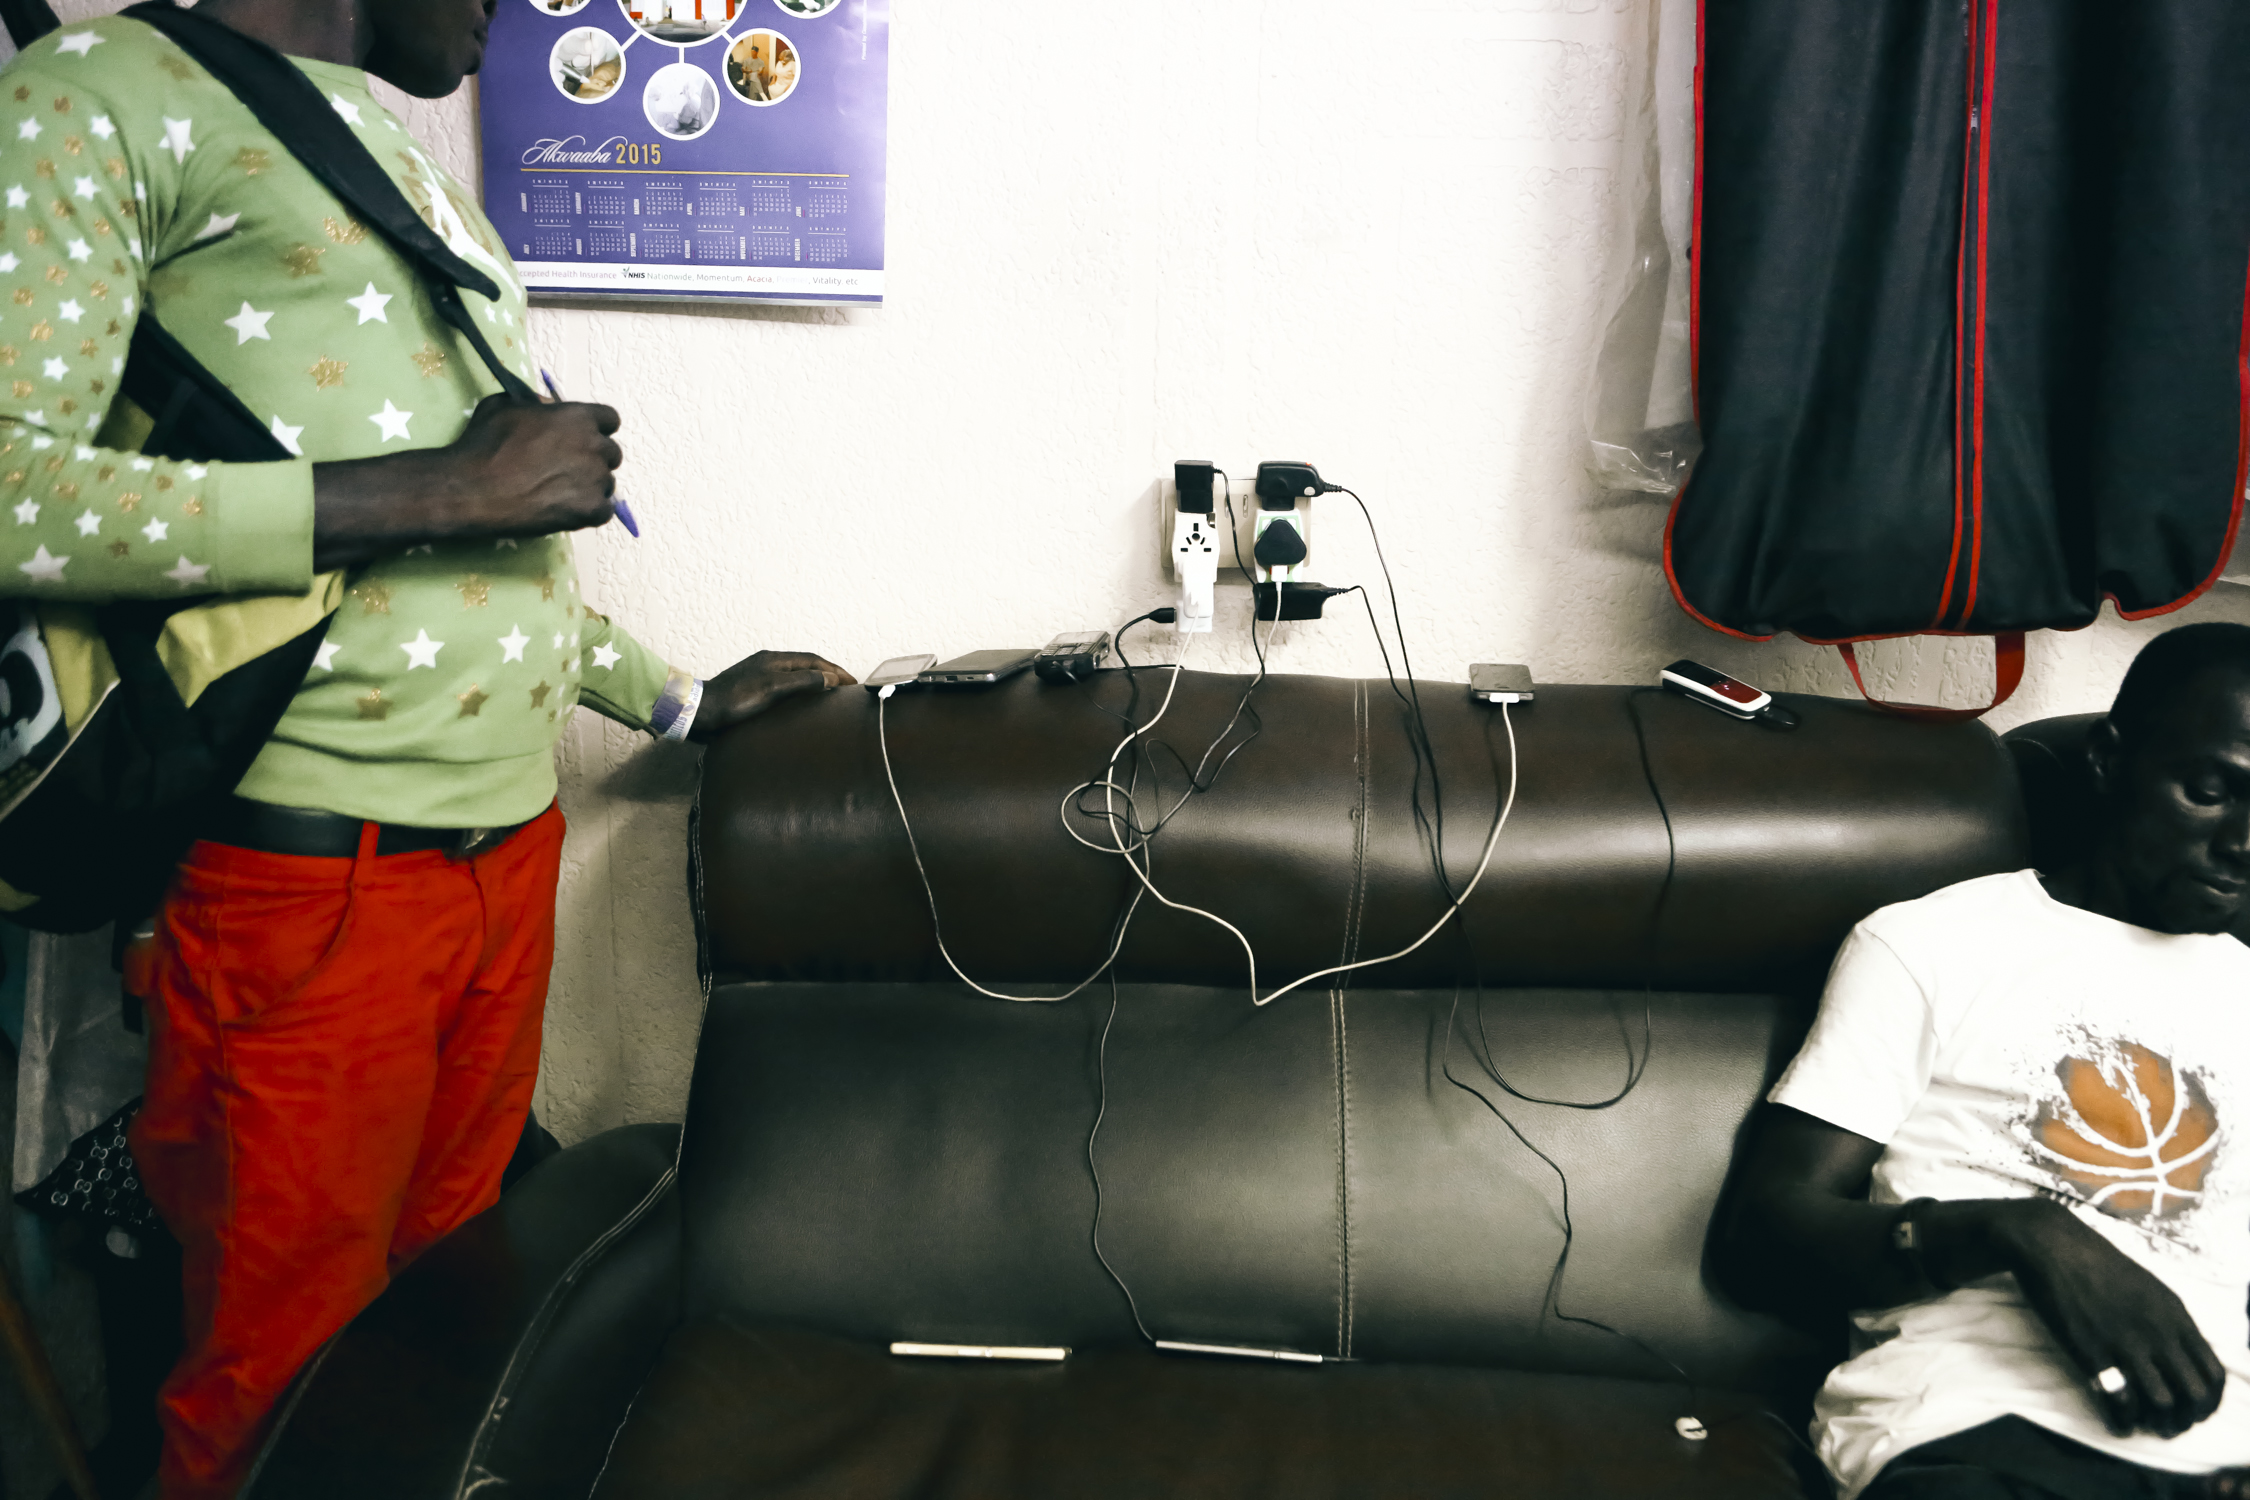 For a small amount of money, people can use the outlets in a barber shop to charge their mobile phones. Small businesses like barbershops usually have their own power generators,enabling them to keep working during power outages.